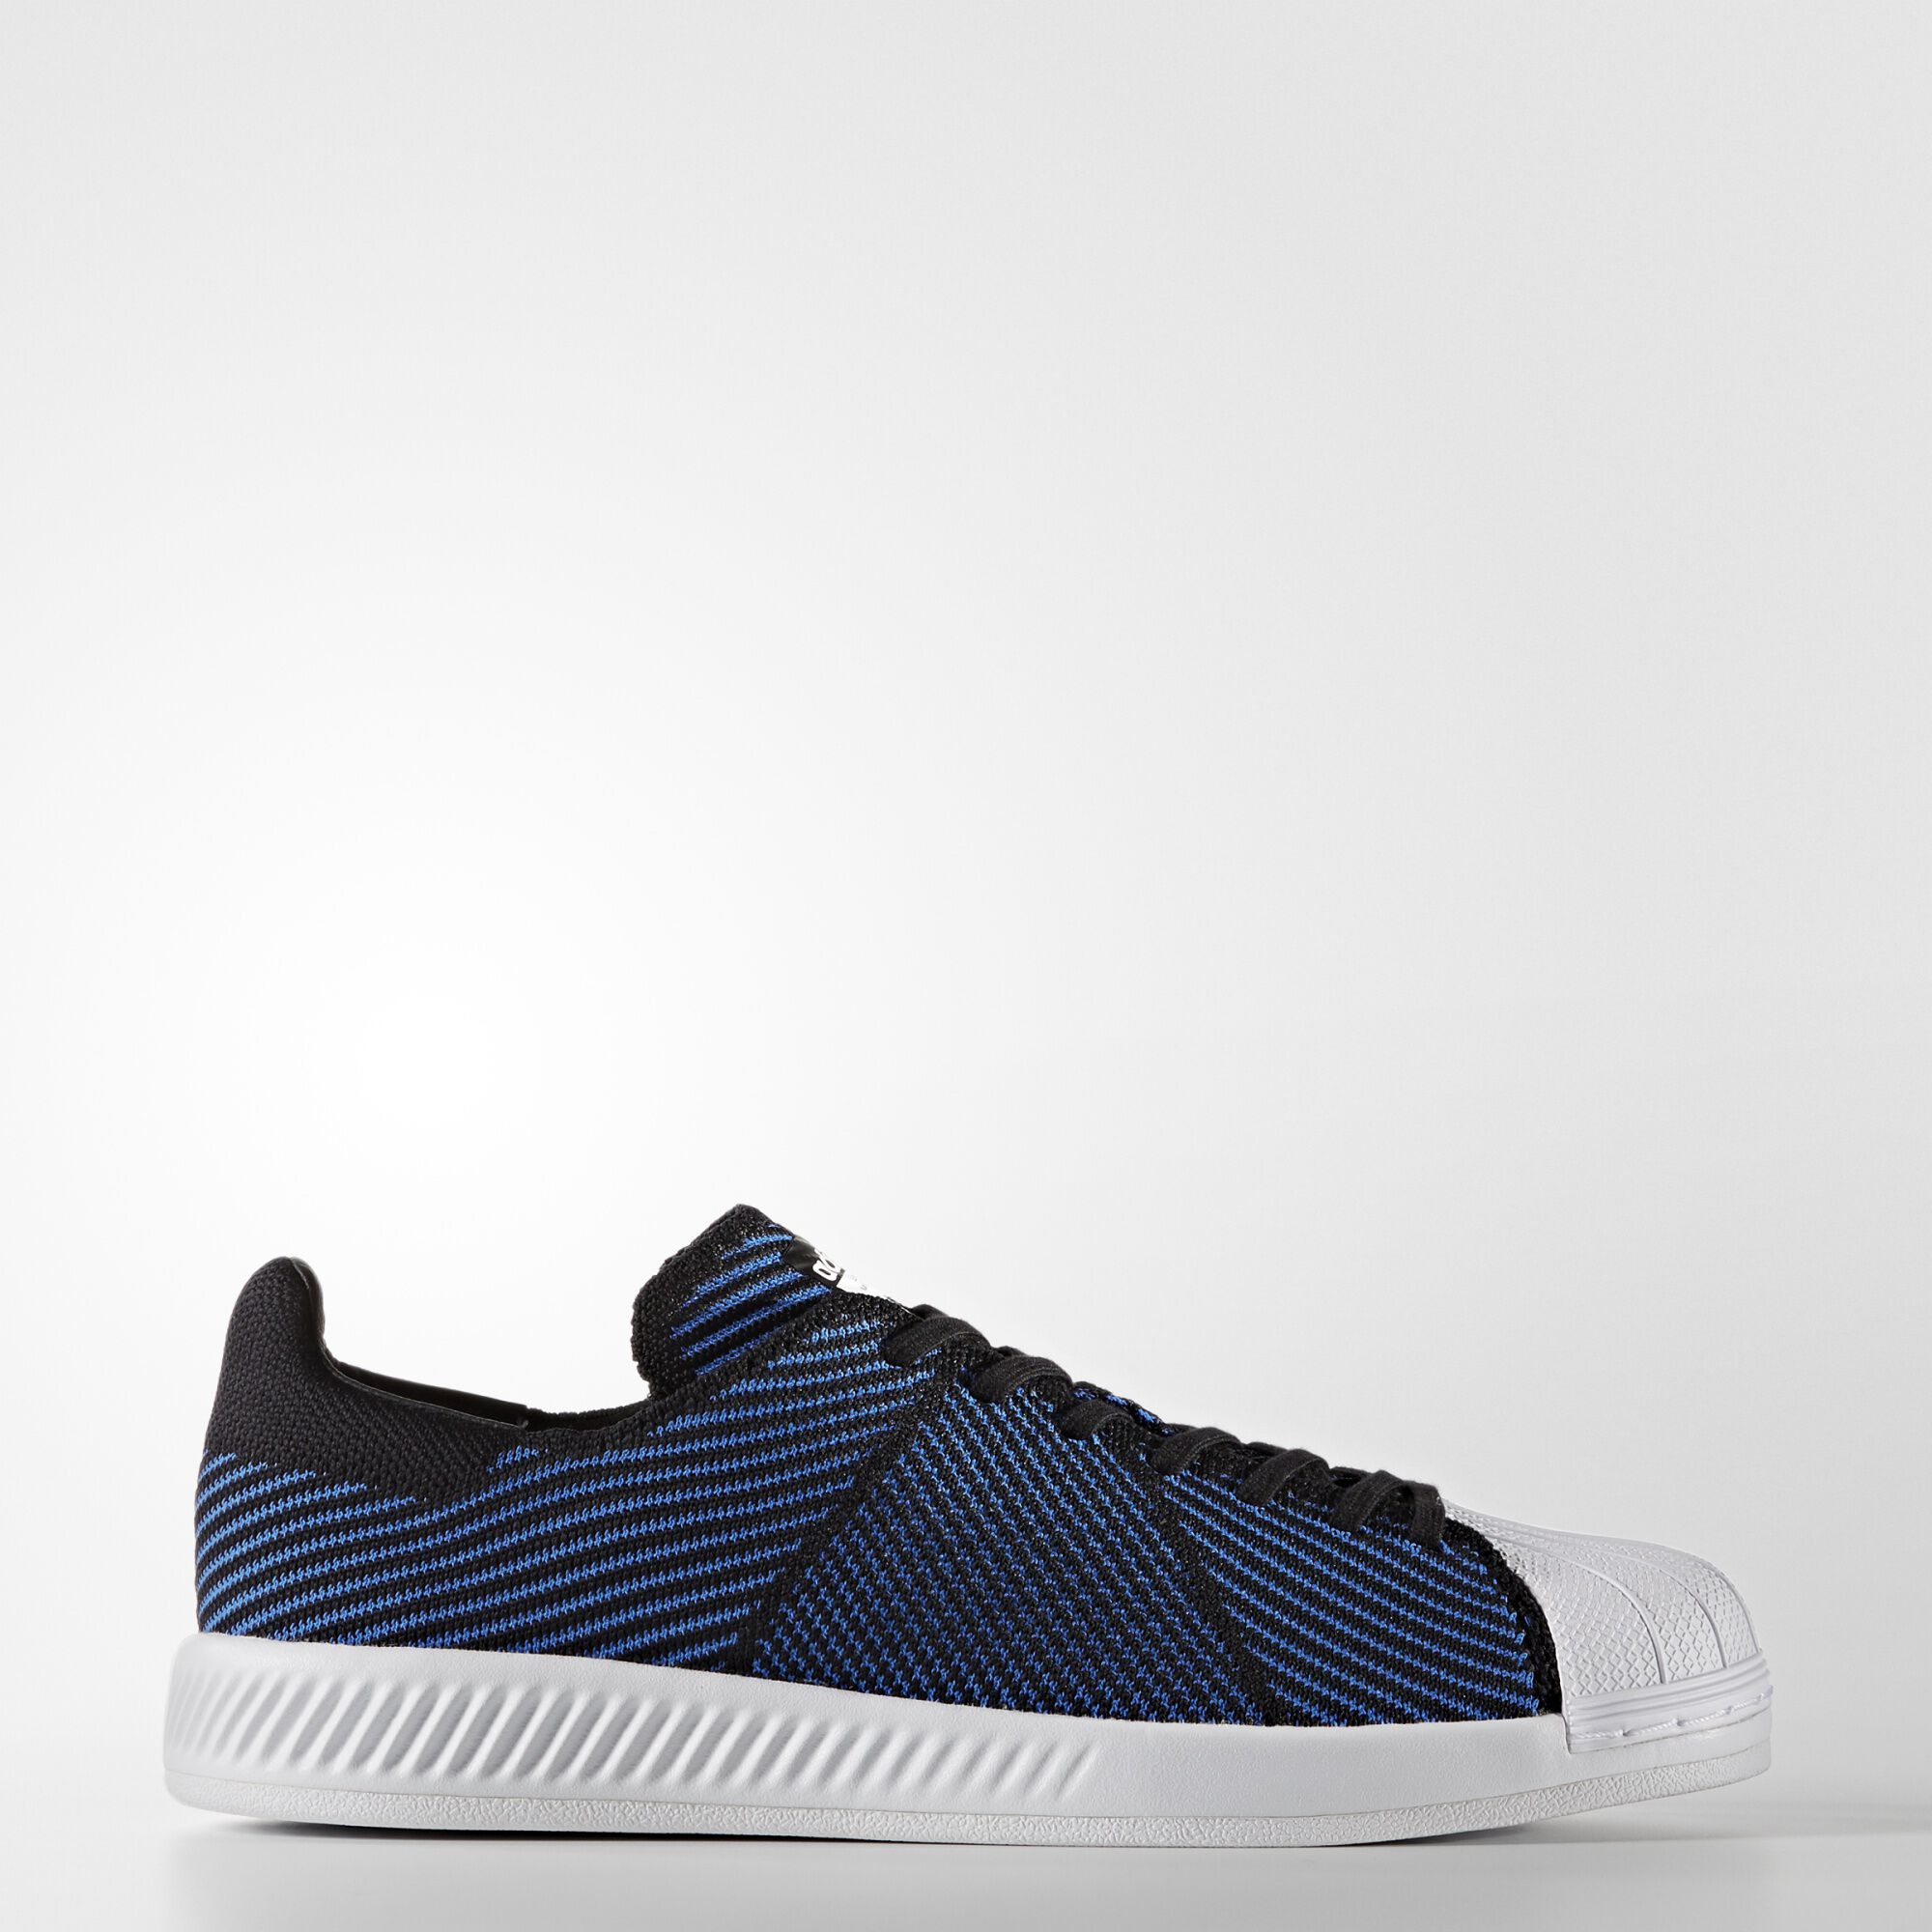 image: adidas superstar [13]